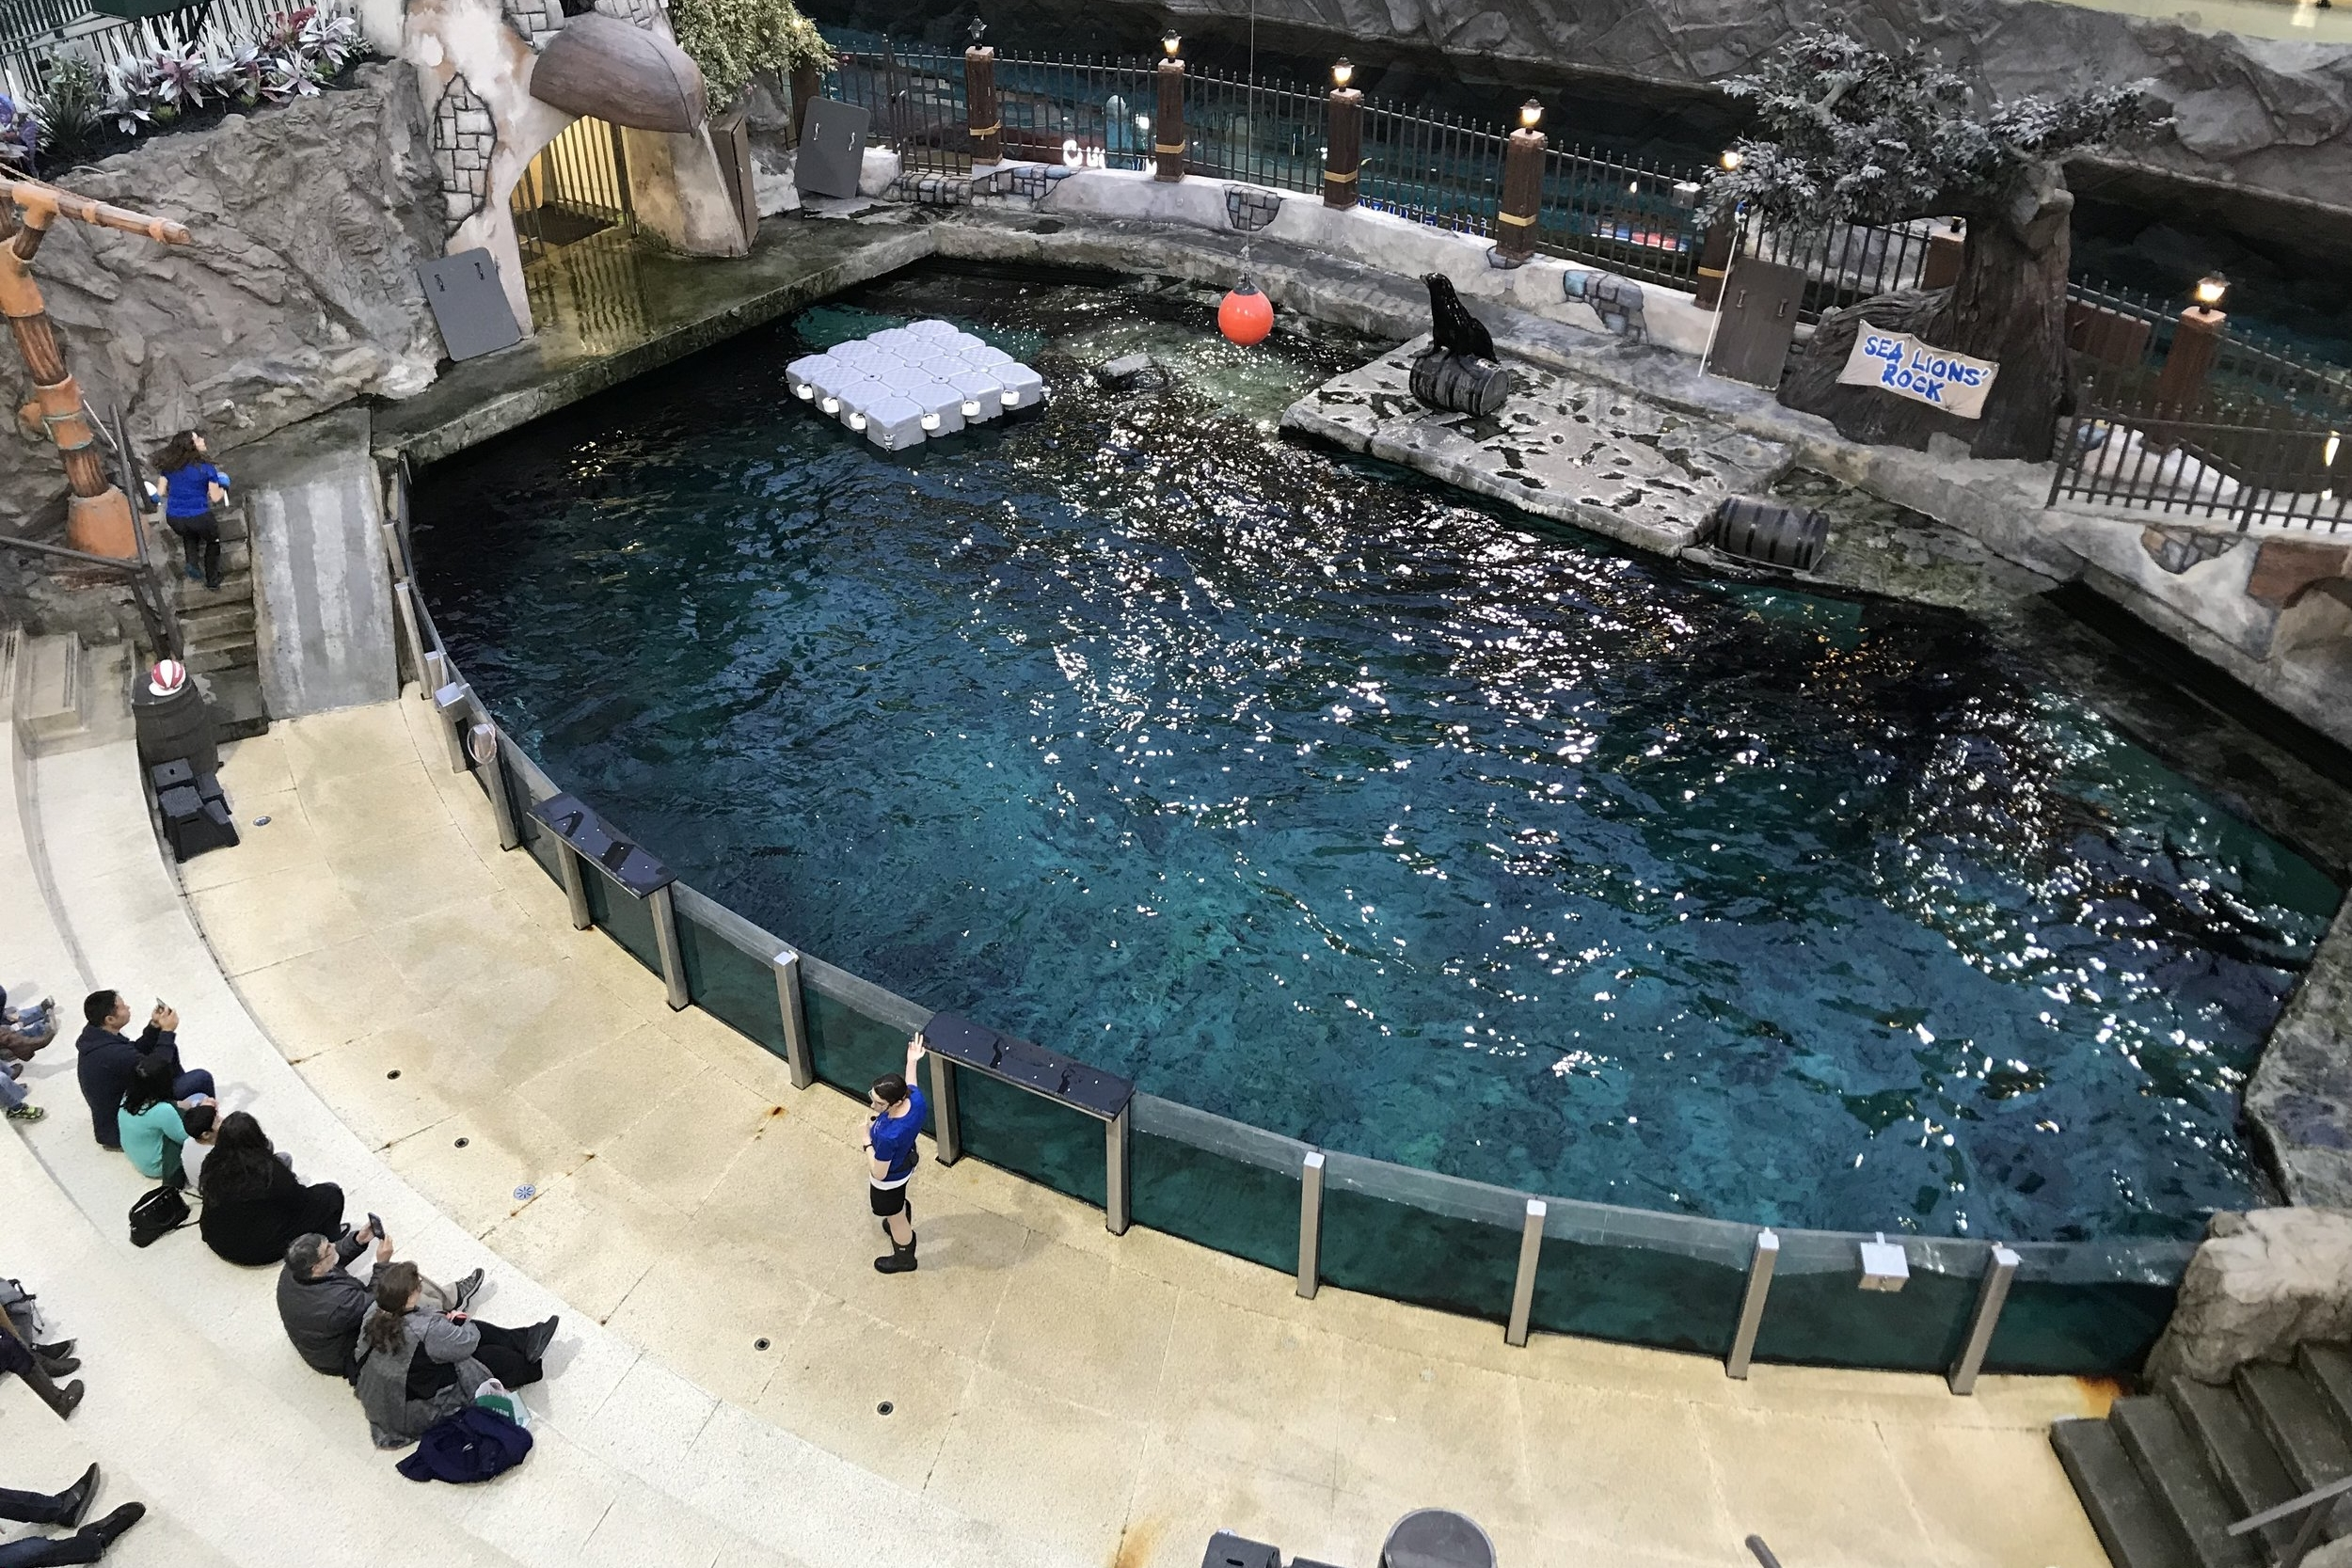 Sea lion show at the West Edmonton Mall